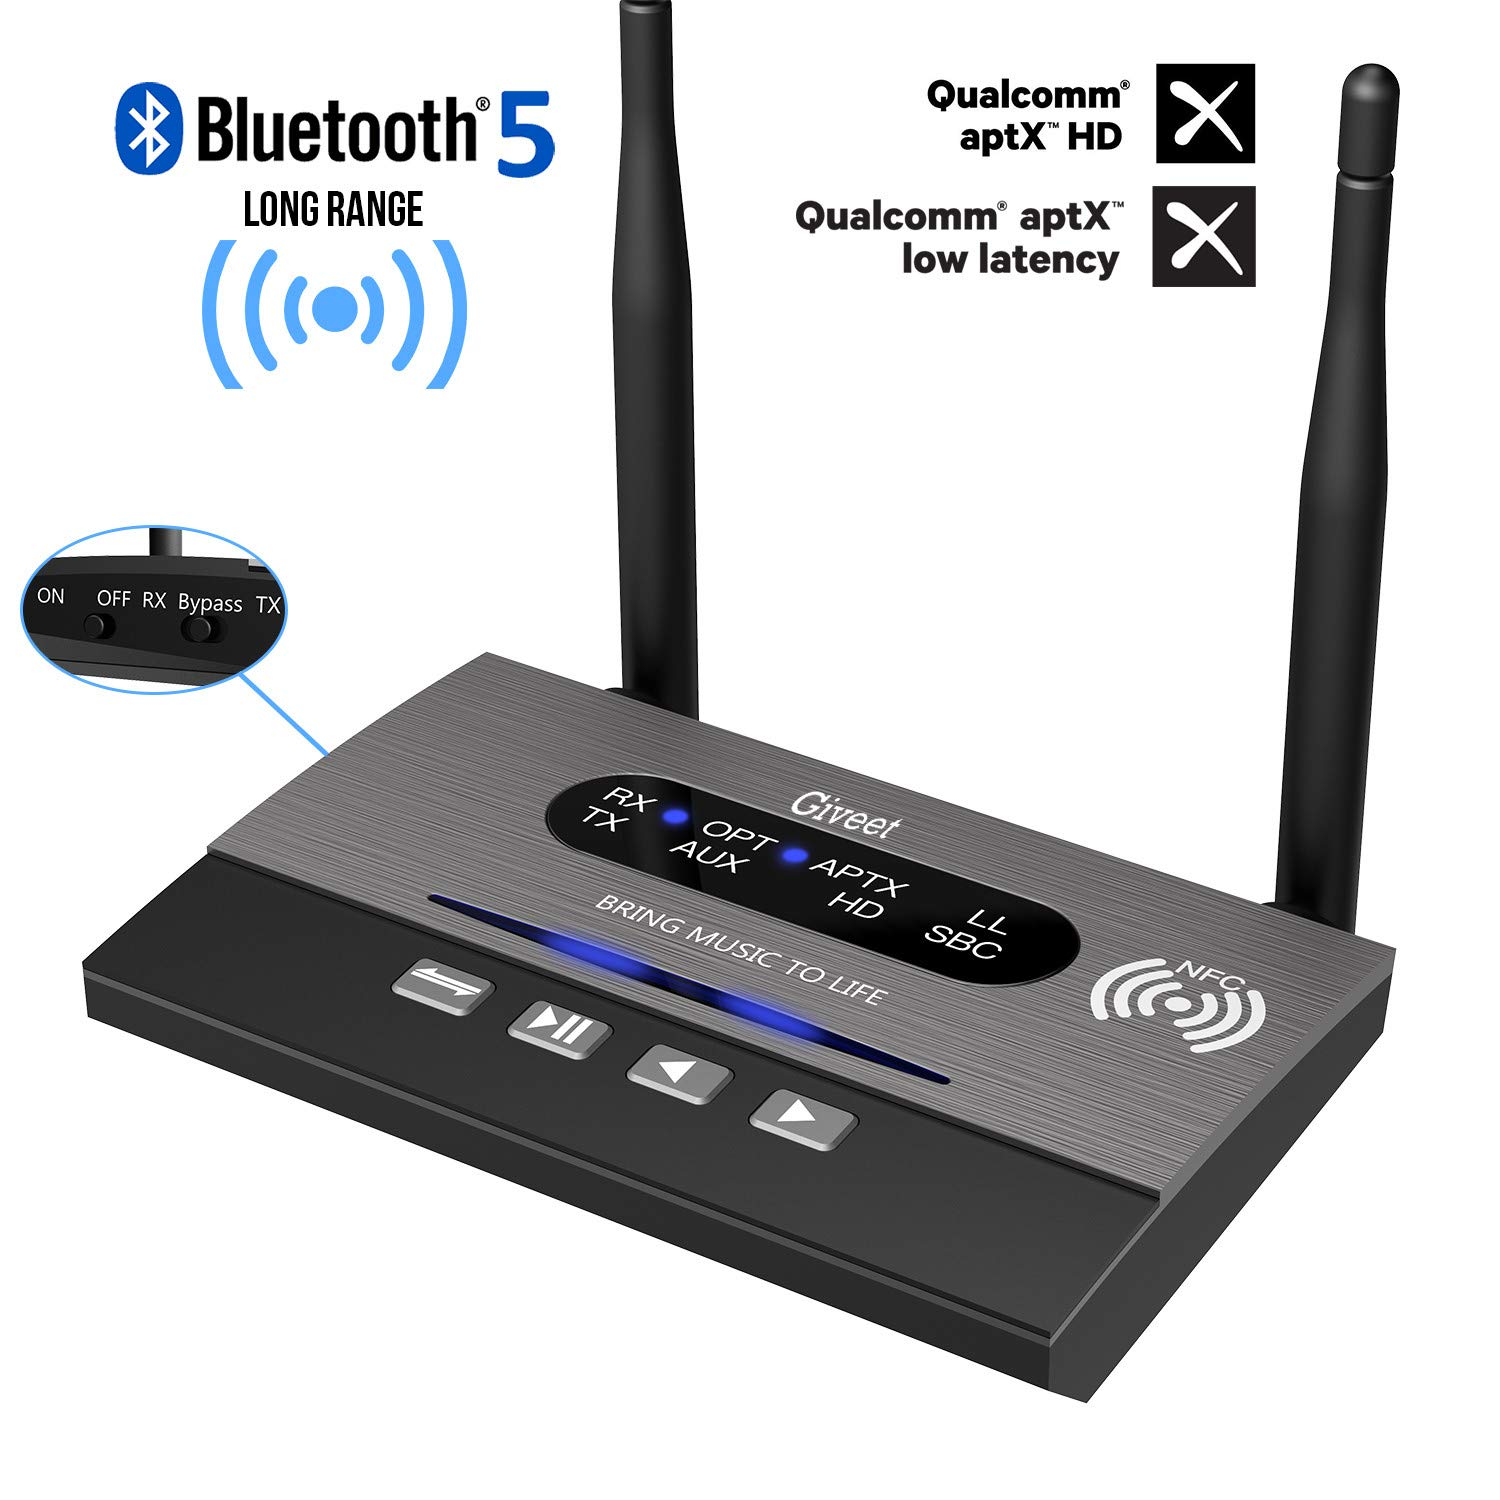 Transmisor Receptor Bluetooth 5.0 GIVEET Aptx Optica BT-B22-